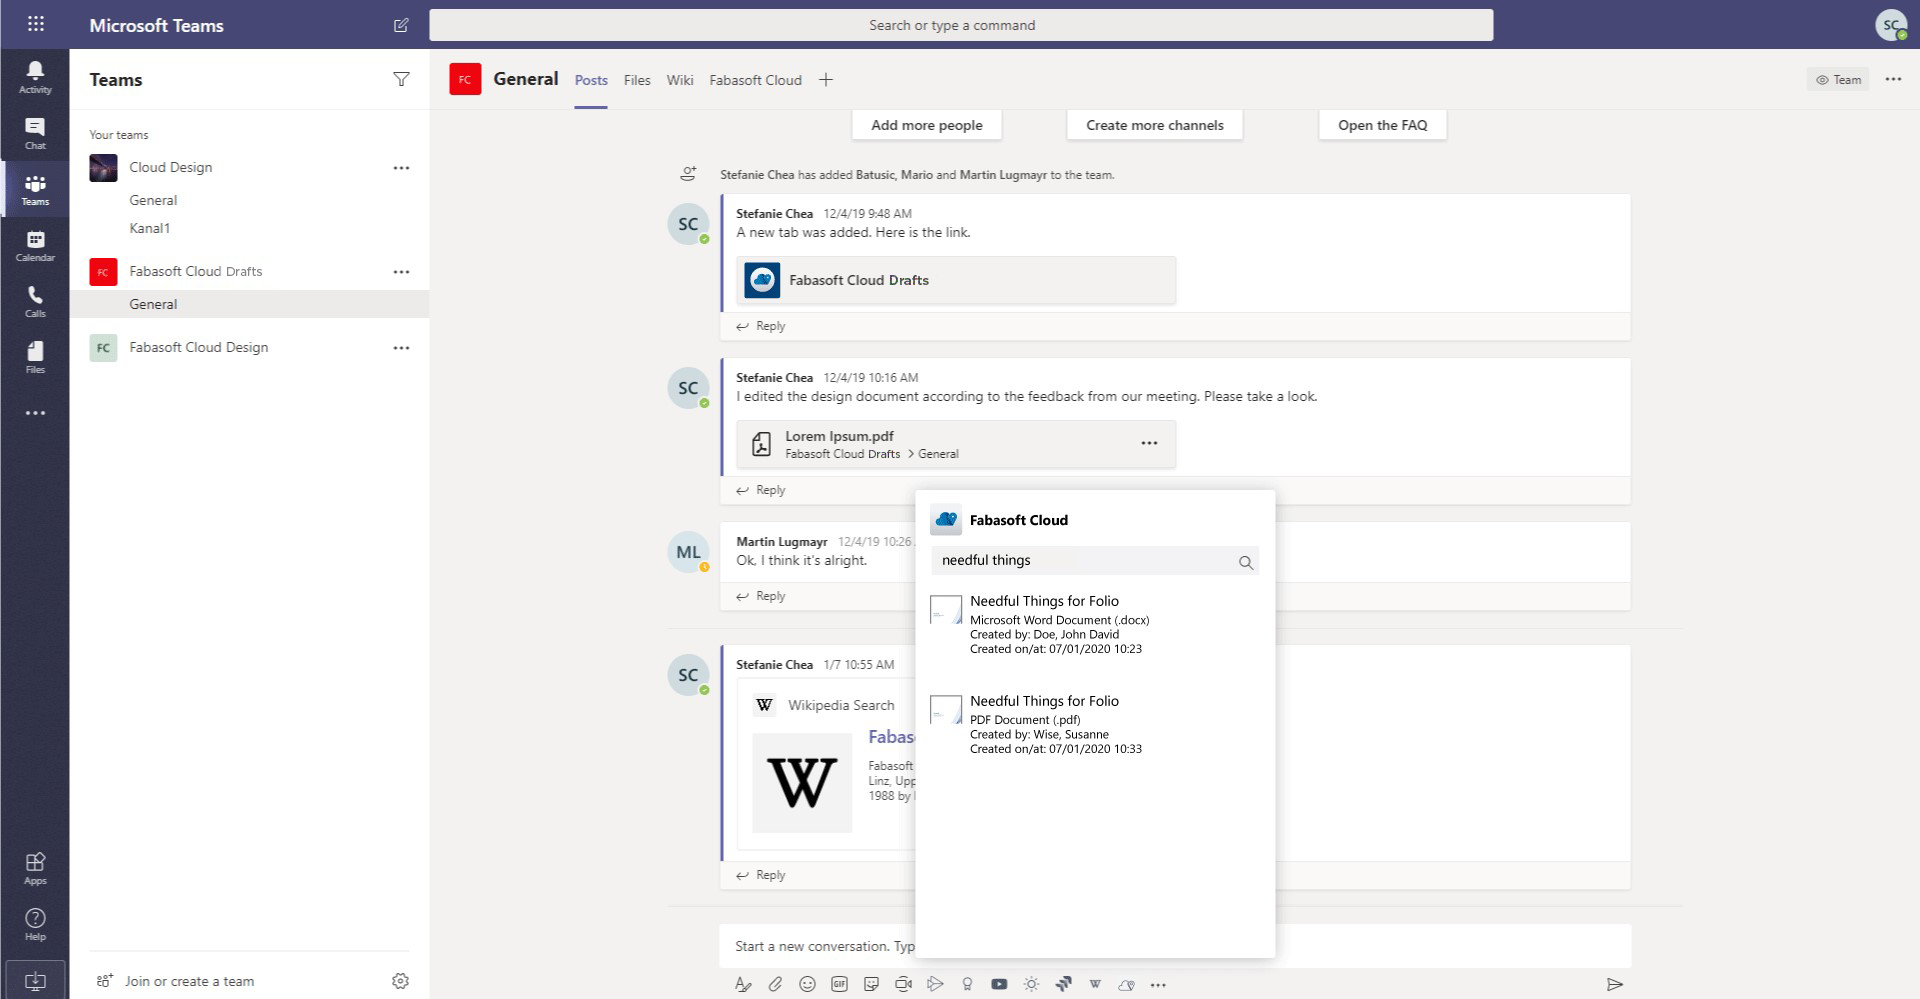 Integration with Microsoft Teams